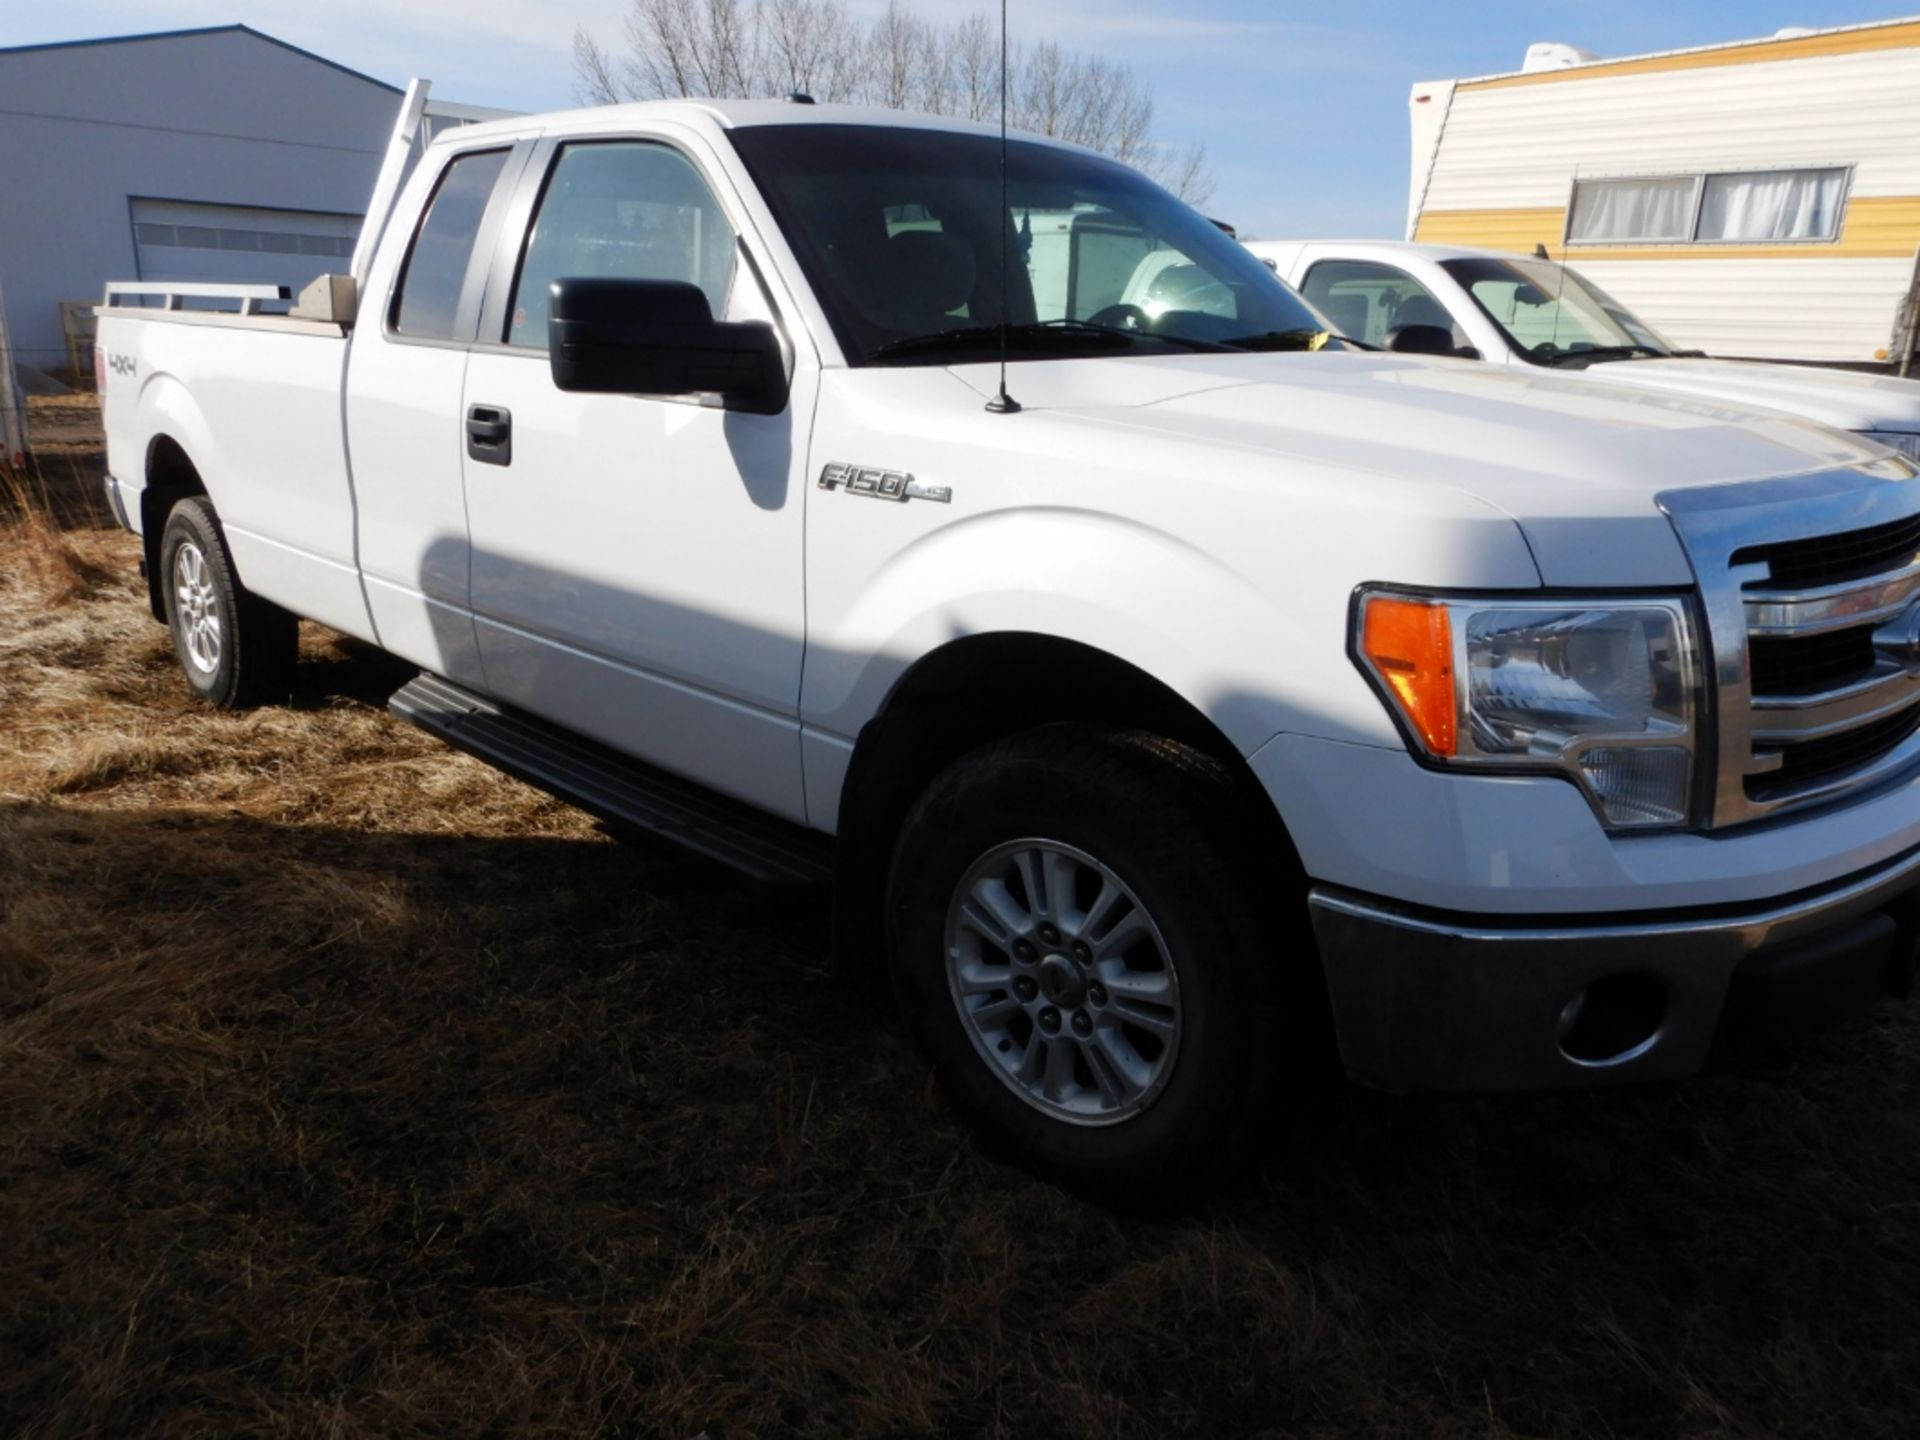 06/2014 FORD F150 XLT 4X4 EXTENDED CAB LONG BOX PICKUP W/BOX RAILS & HEAD ACHE RACK, AT, V8-GAS S/ - Image 2 of 7